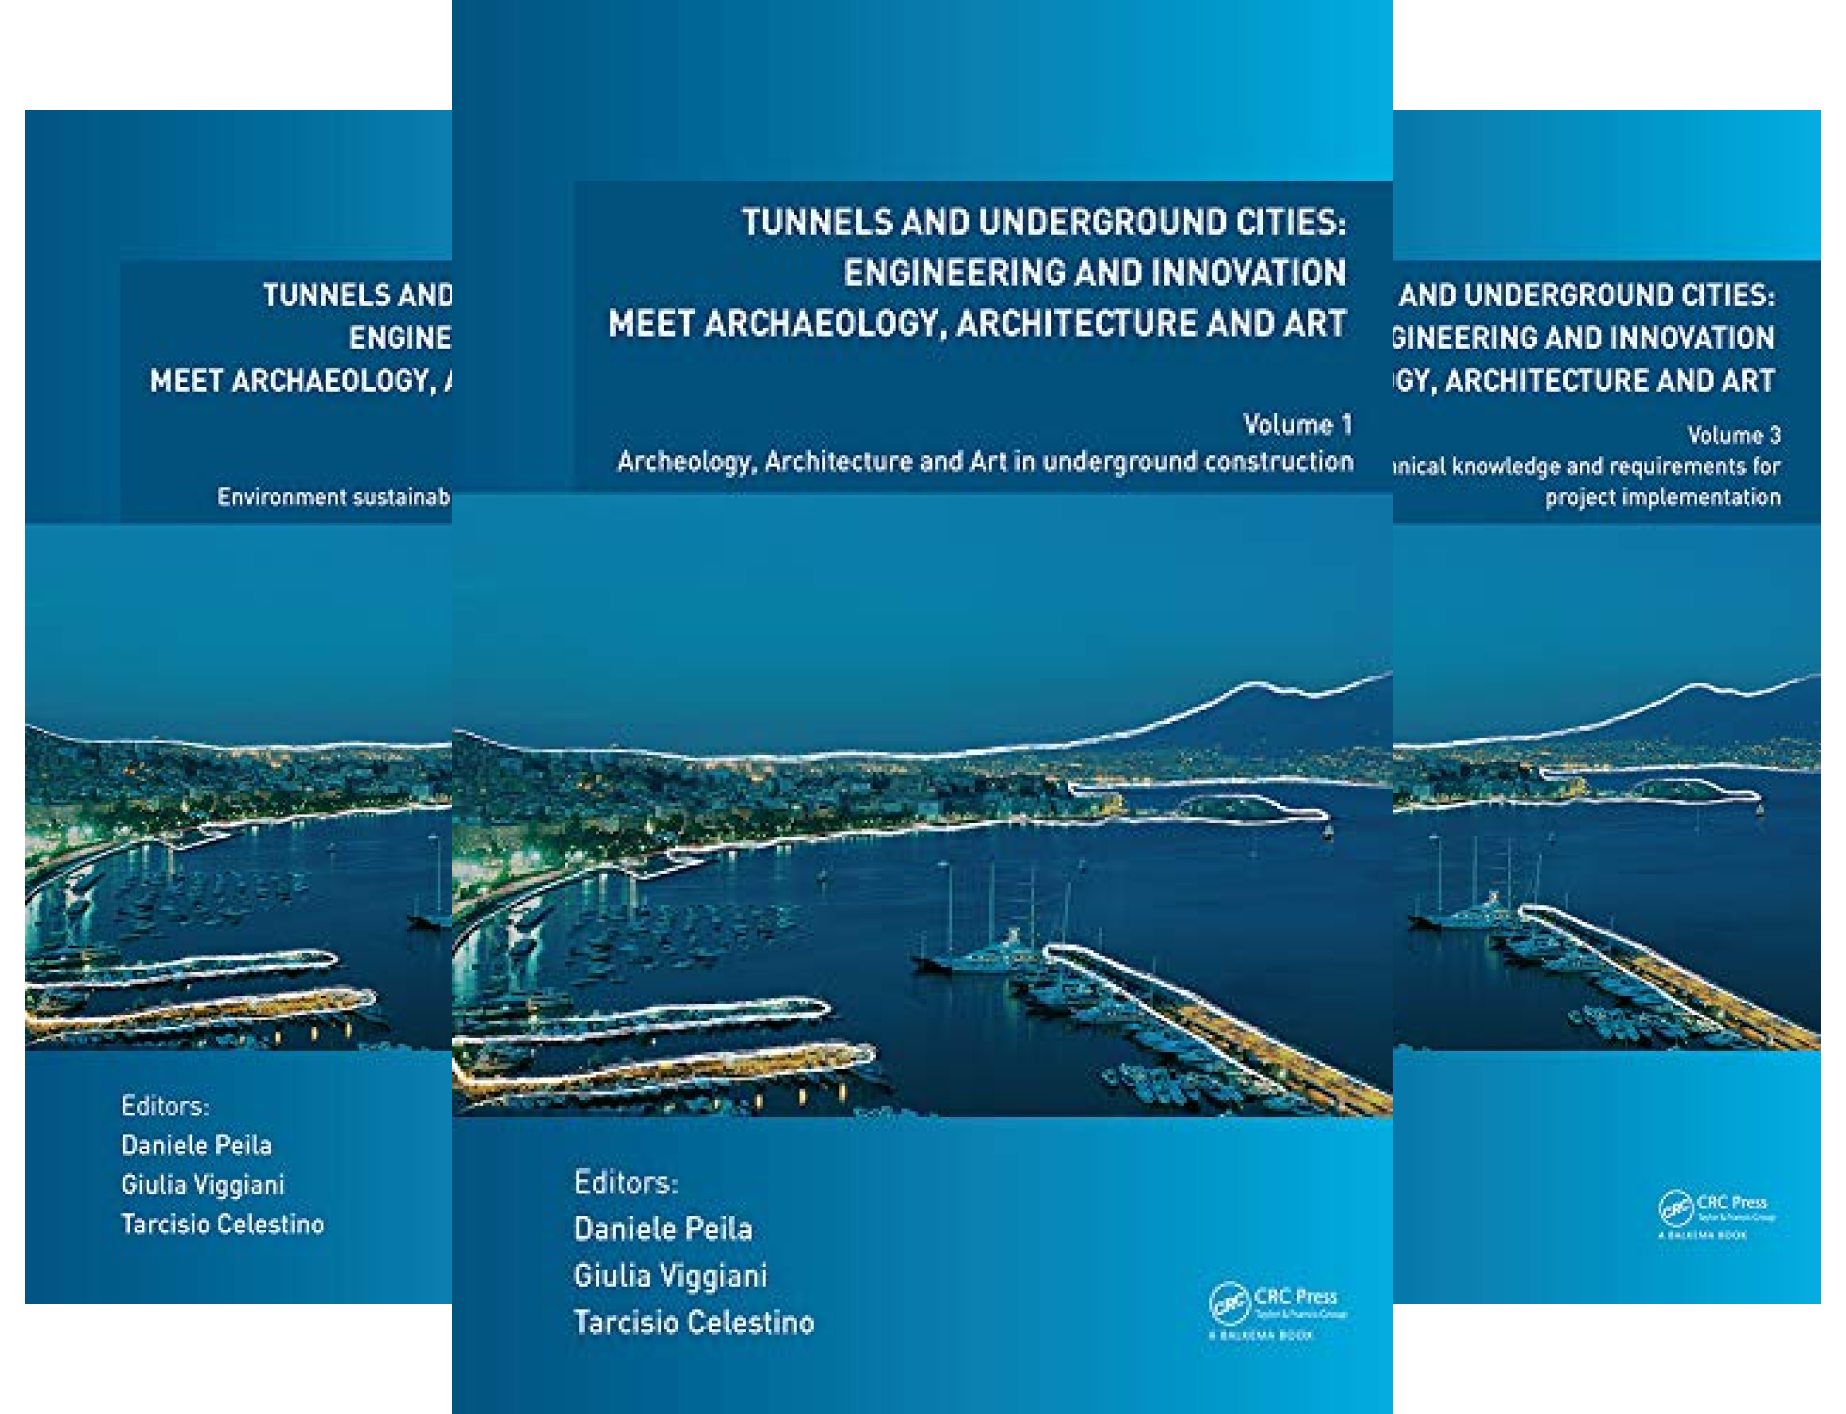 Tunnels and Underground Cities: Engineering and Innovation Meet Archaeology, Architecture and Art (1